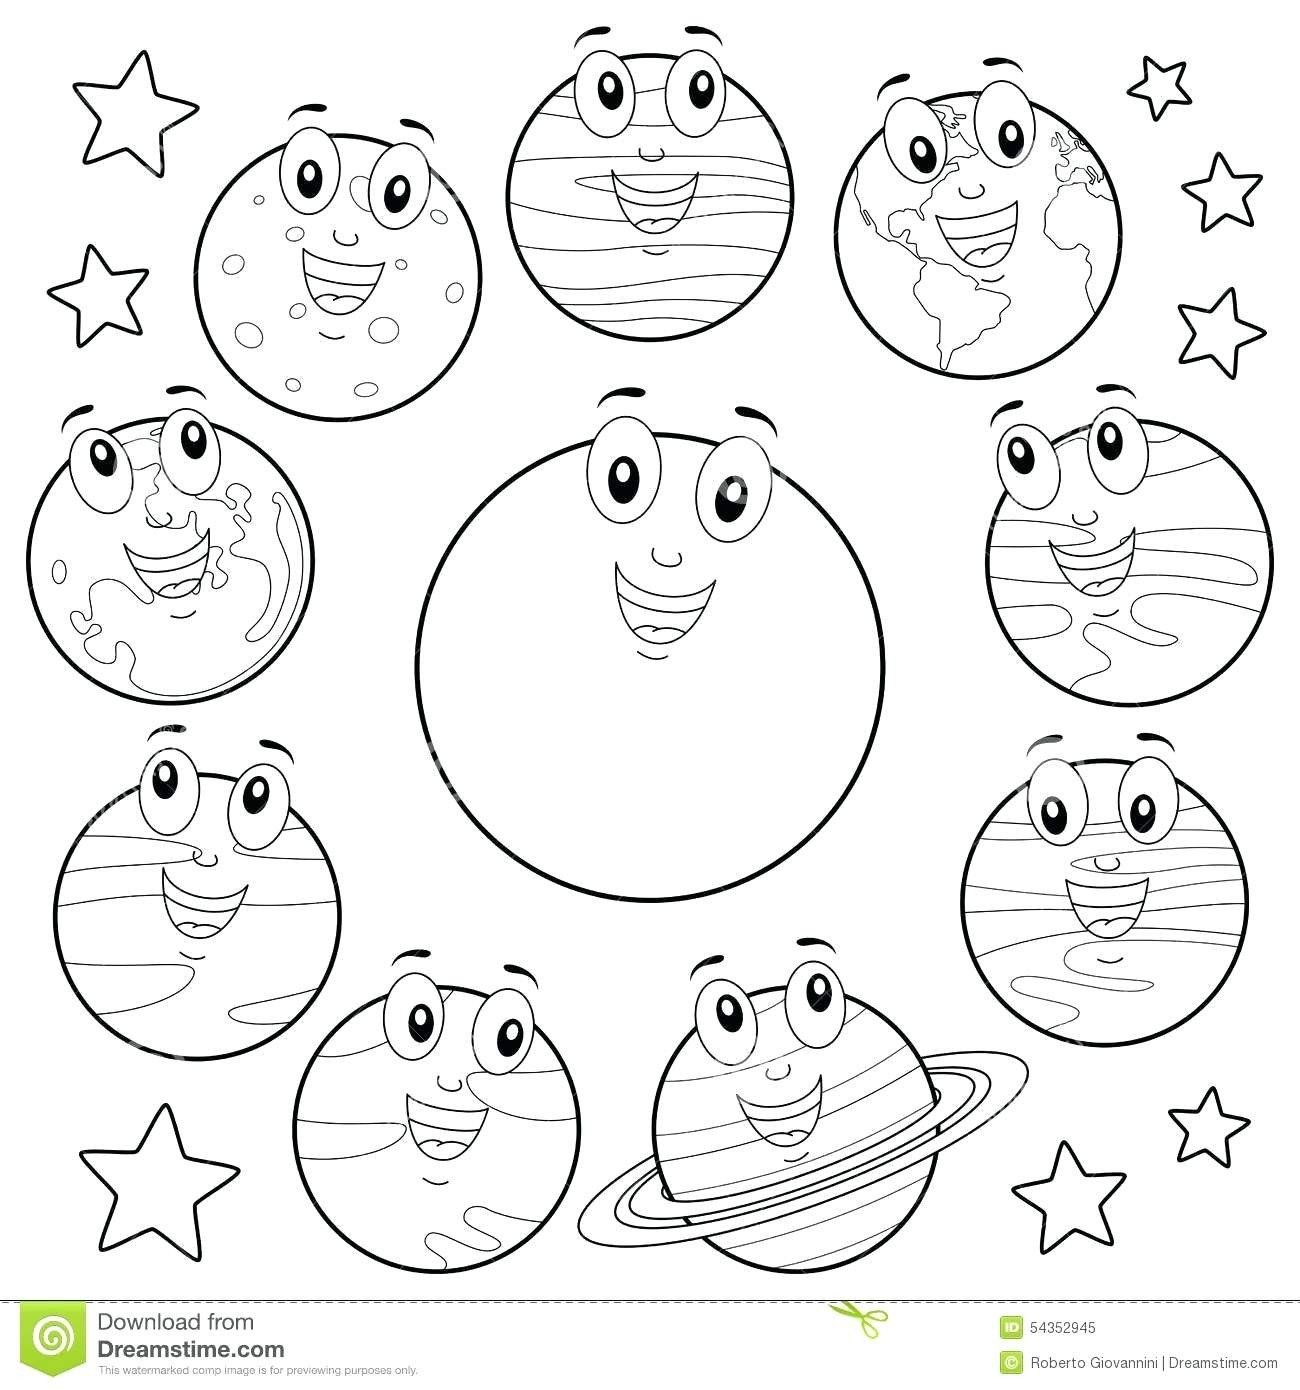 28 Best Of solar System Coloring Pages in 2020 Solar